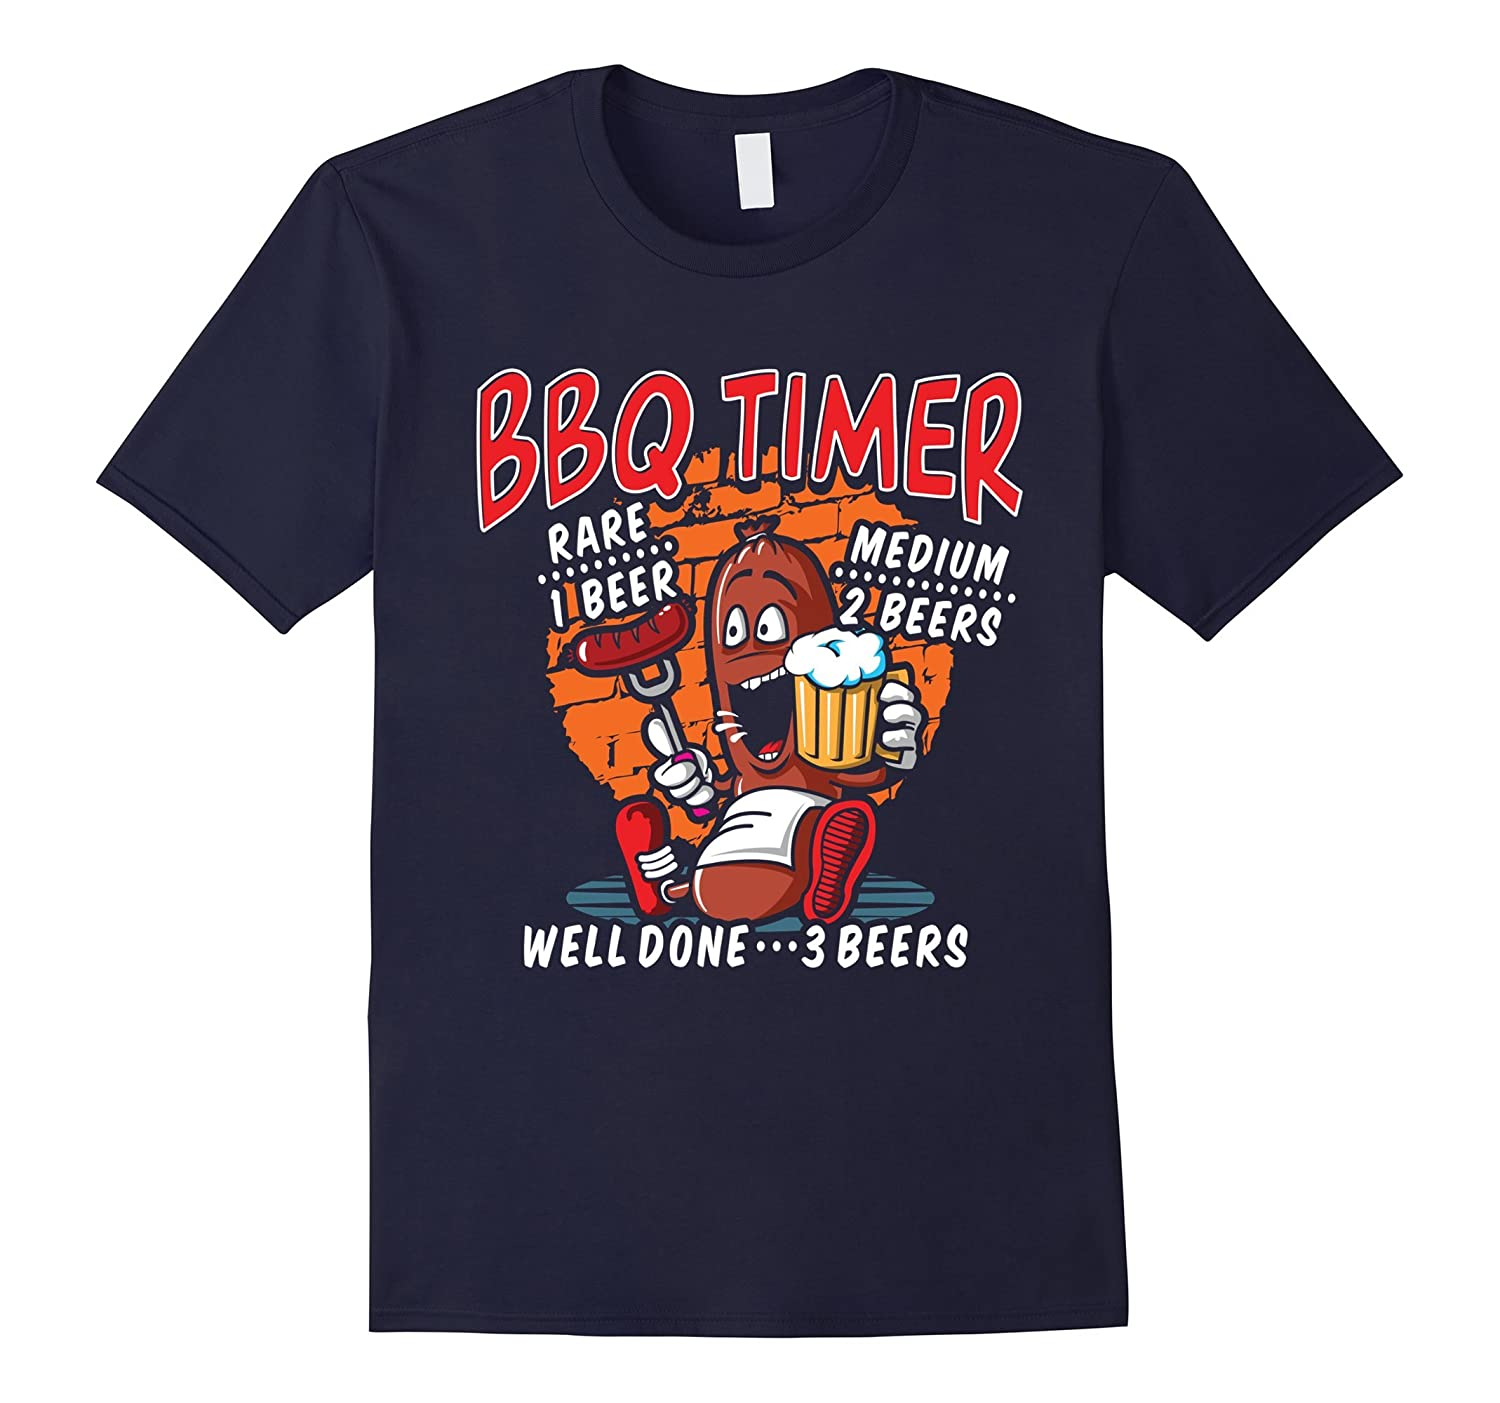 BBQ Timer Rare 1 Beer Medium 2 Beers Well Done 3 Beers Tees-T-Shirt